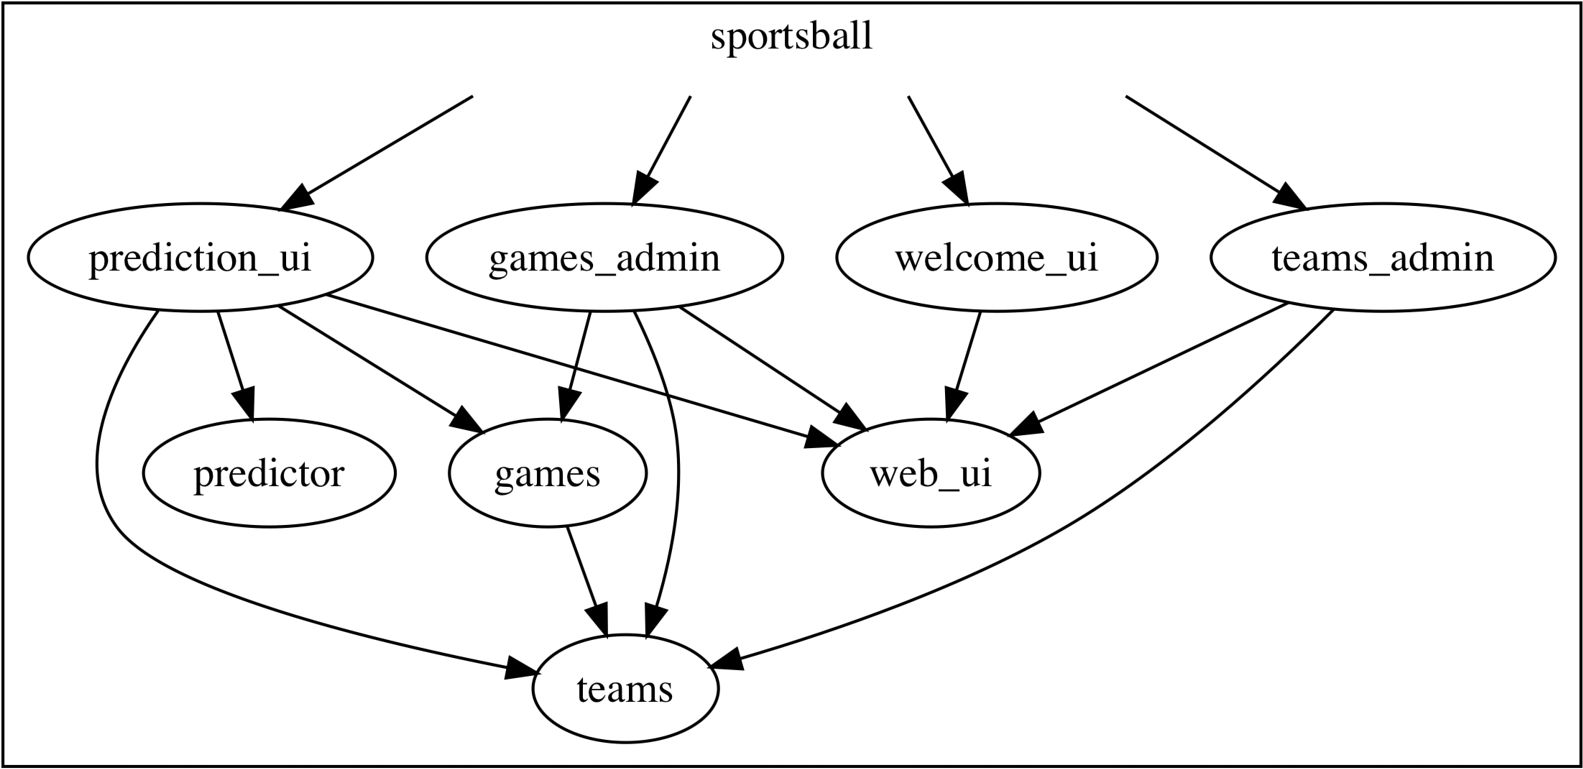 Sportsball Component Structure